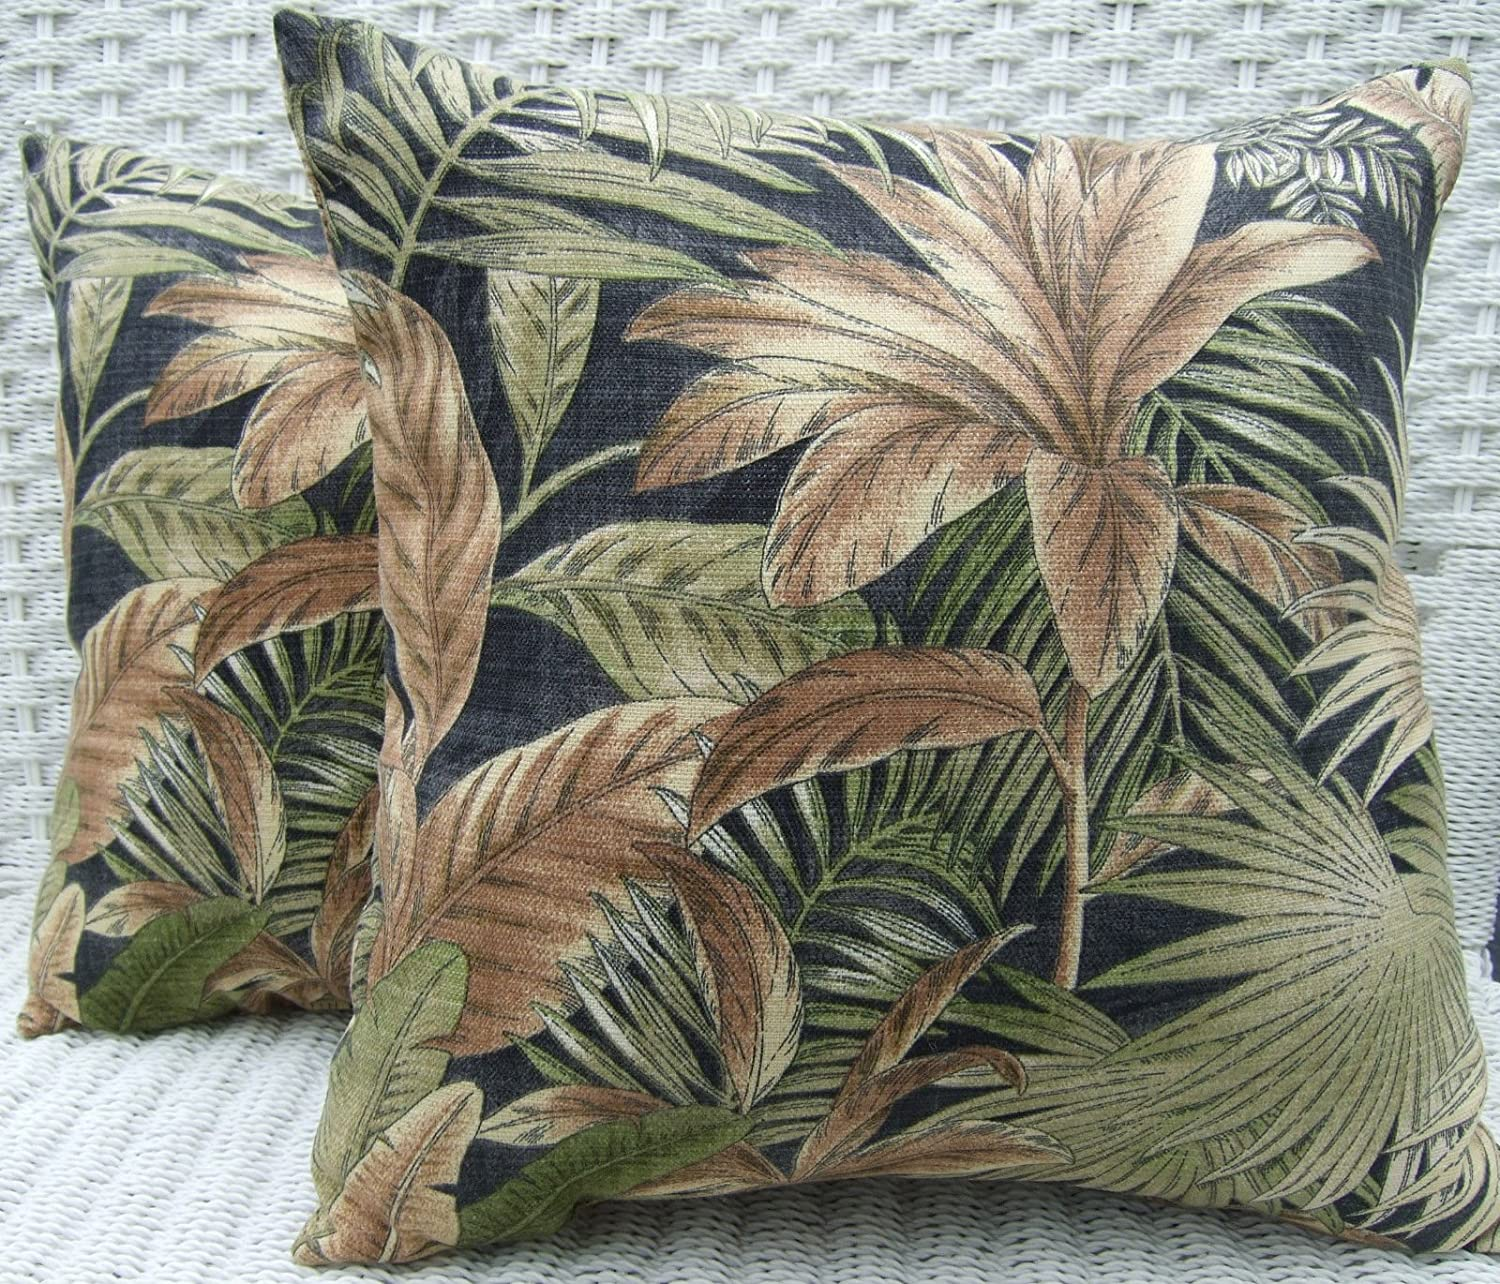 Set of 2 Indoor Outdoor 20 Decorative Throw Pillows – Black Green Tan Tropical Palm Leaf Floral